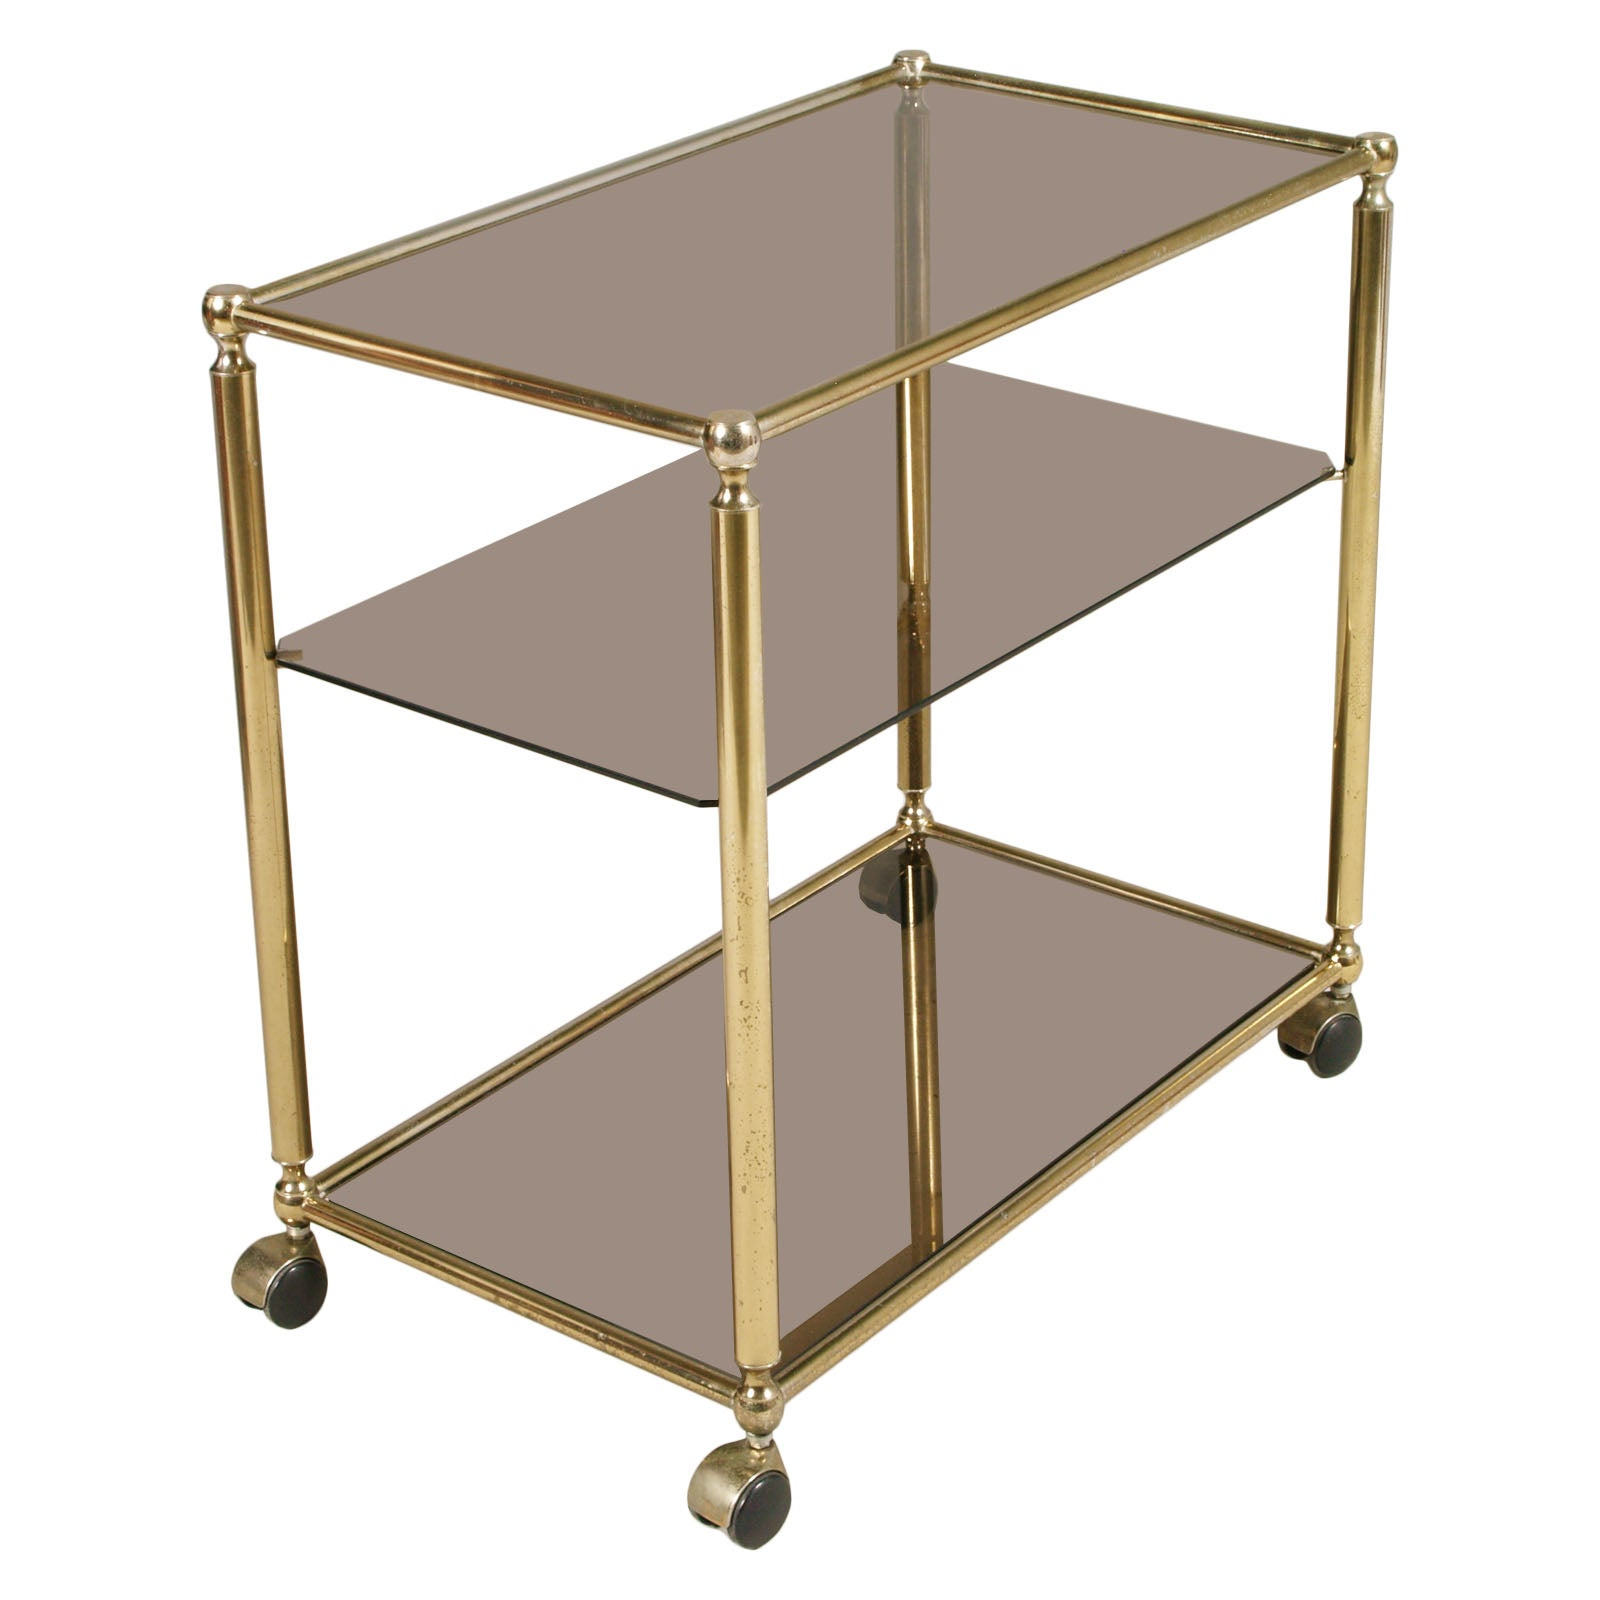 Mid-Century Modern Bar Cart in Brass with Three Shelves in Crystal Fumè